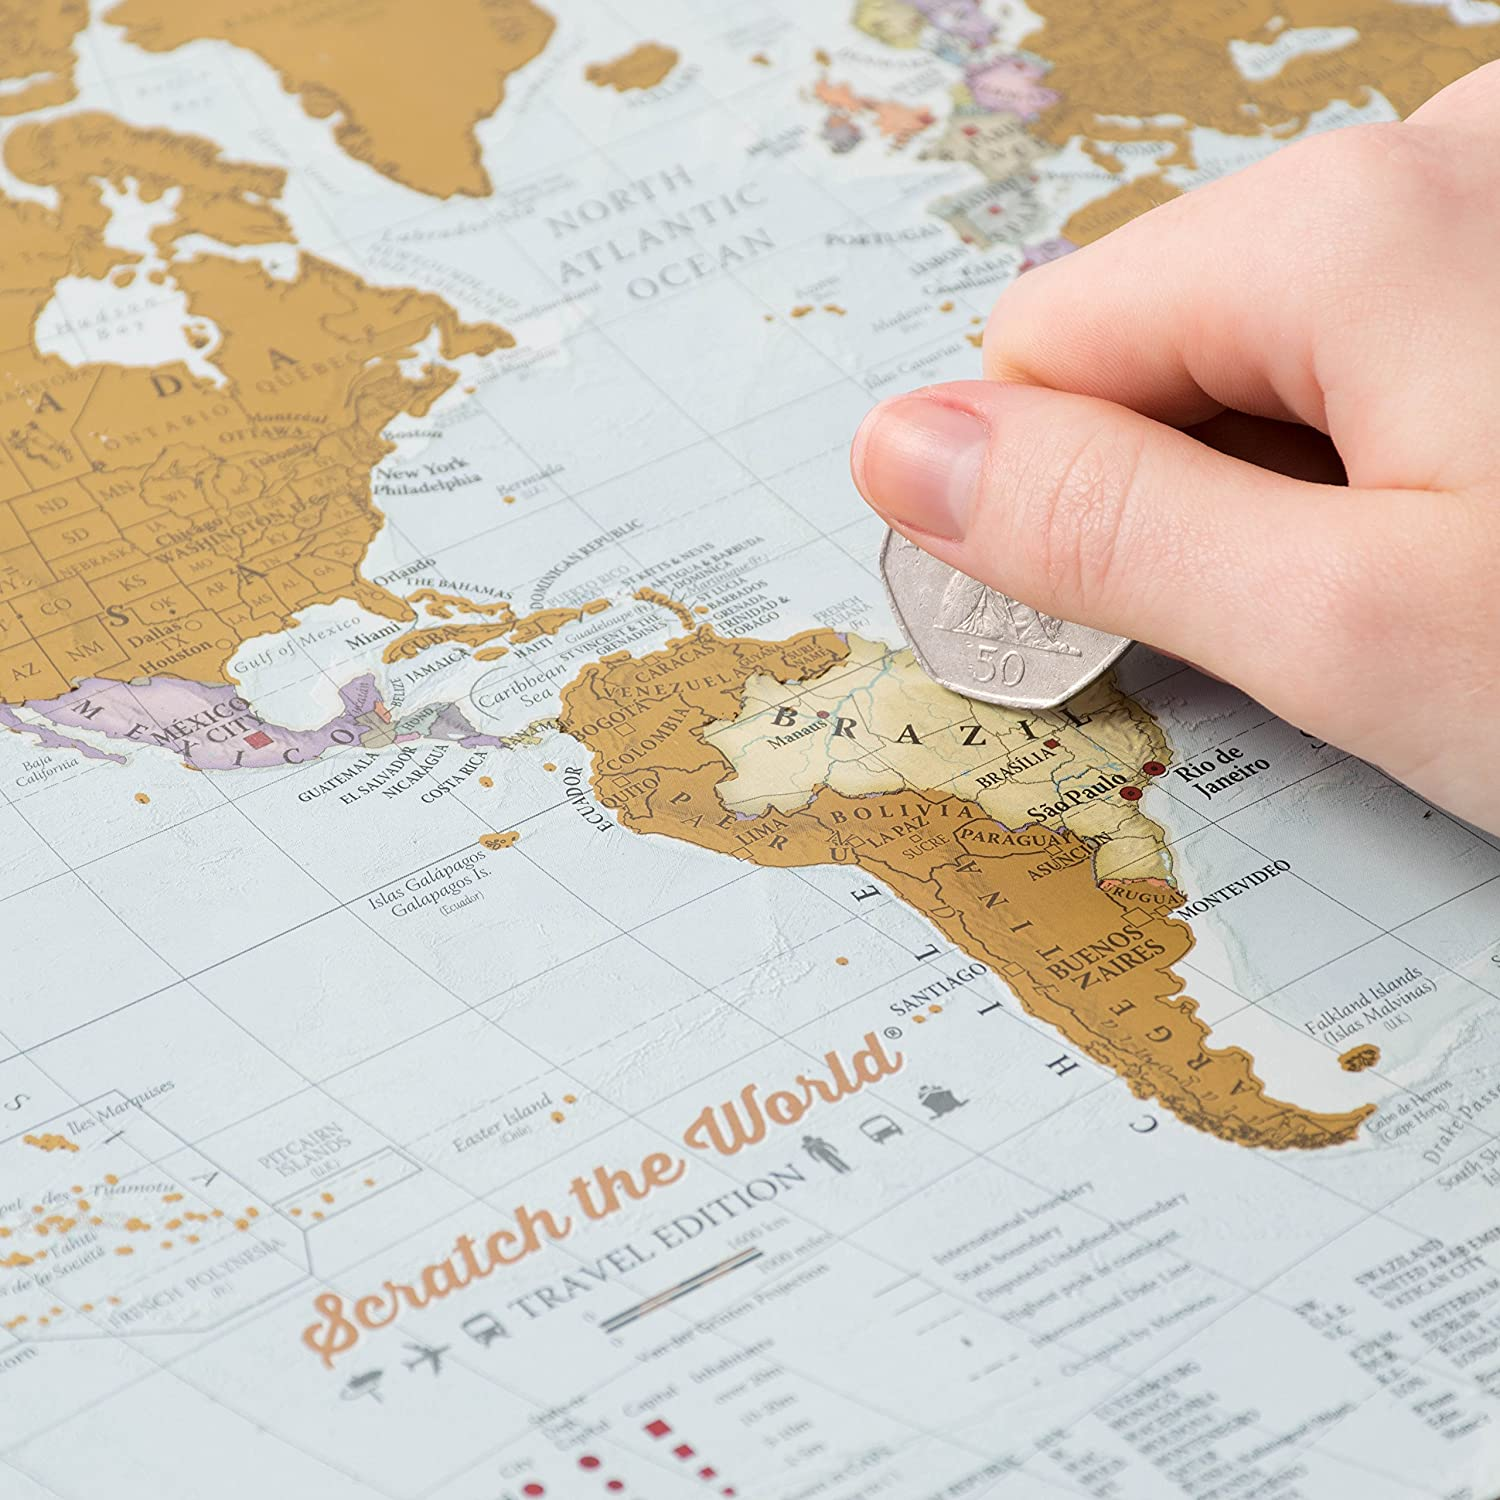 x 29.7 w a3 Travel Sized 42.0 White Wood Frame Scratch The World/® Travel Edition map Print h cm